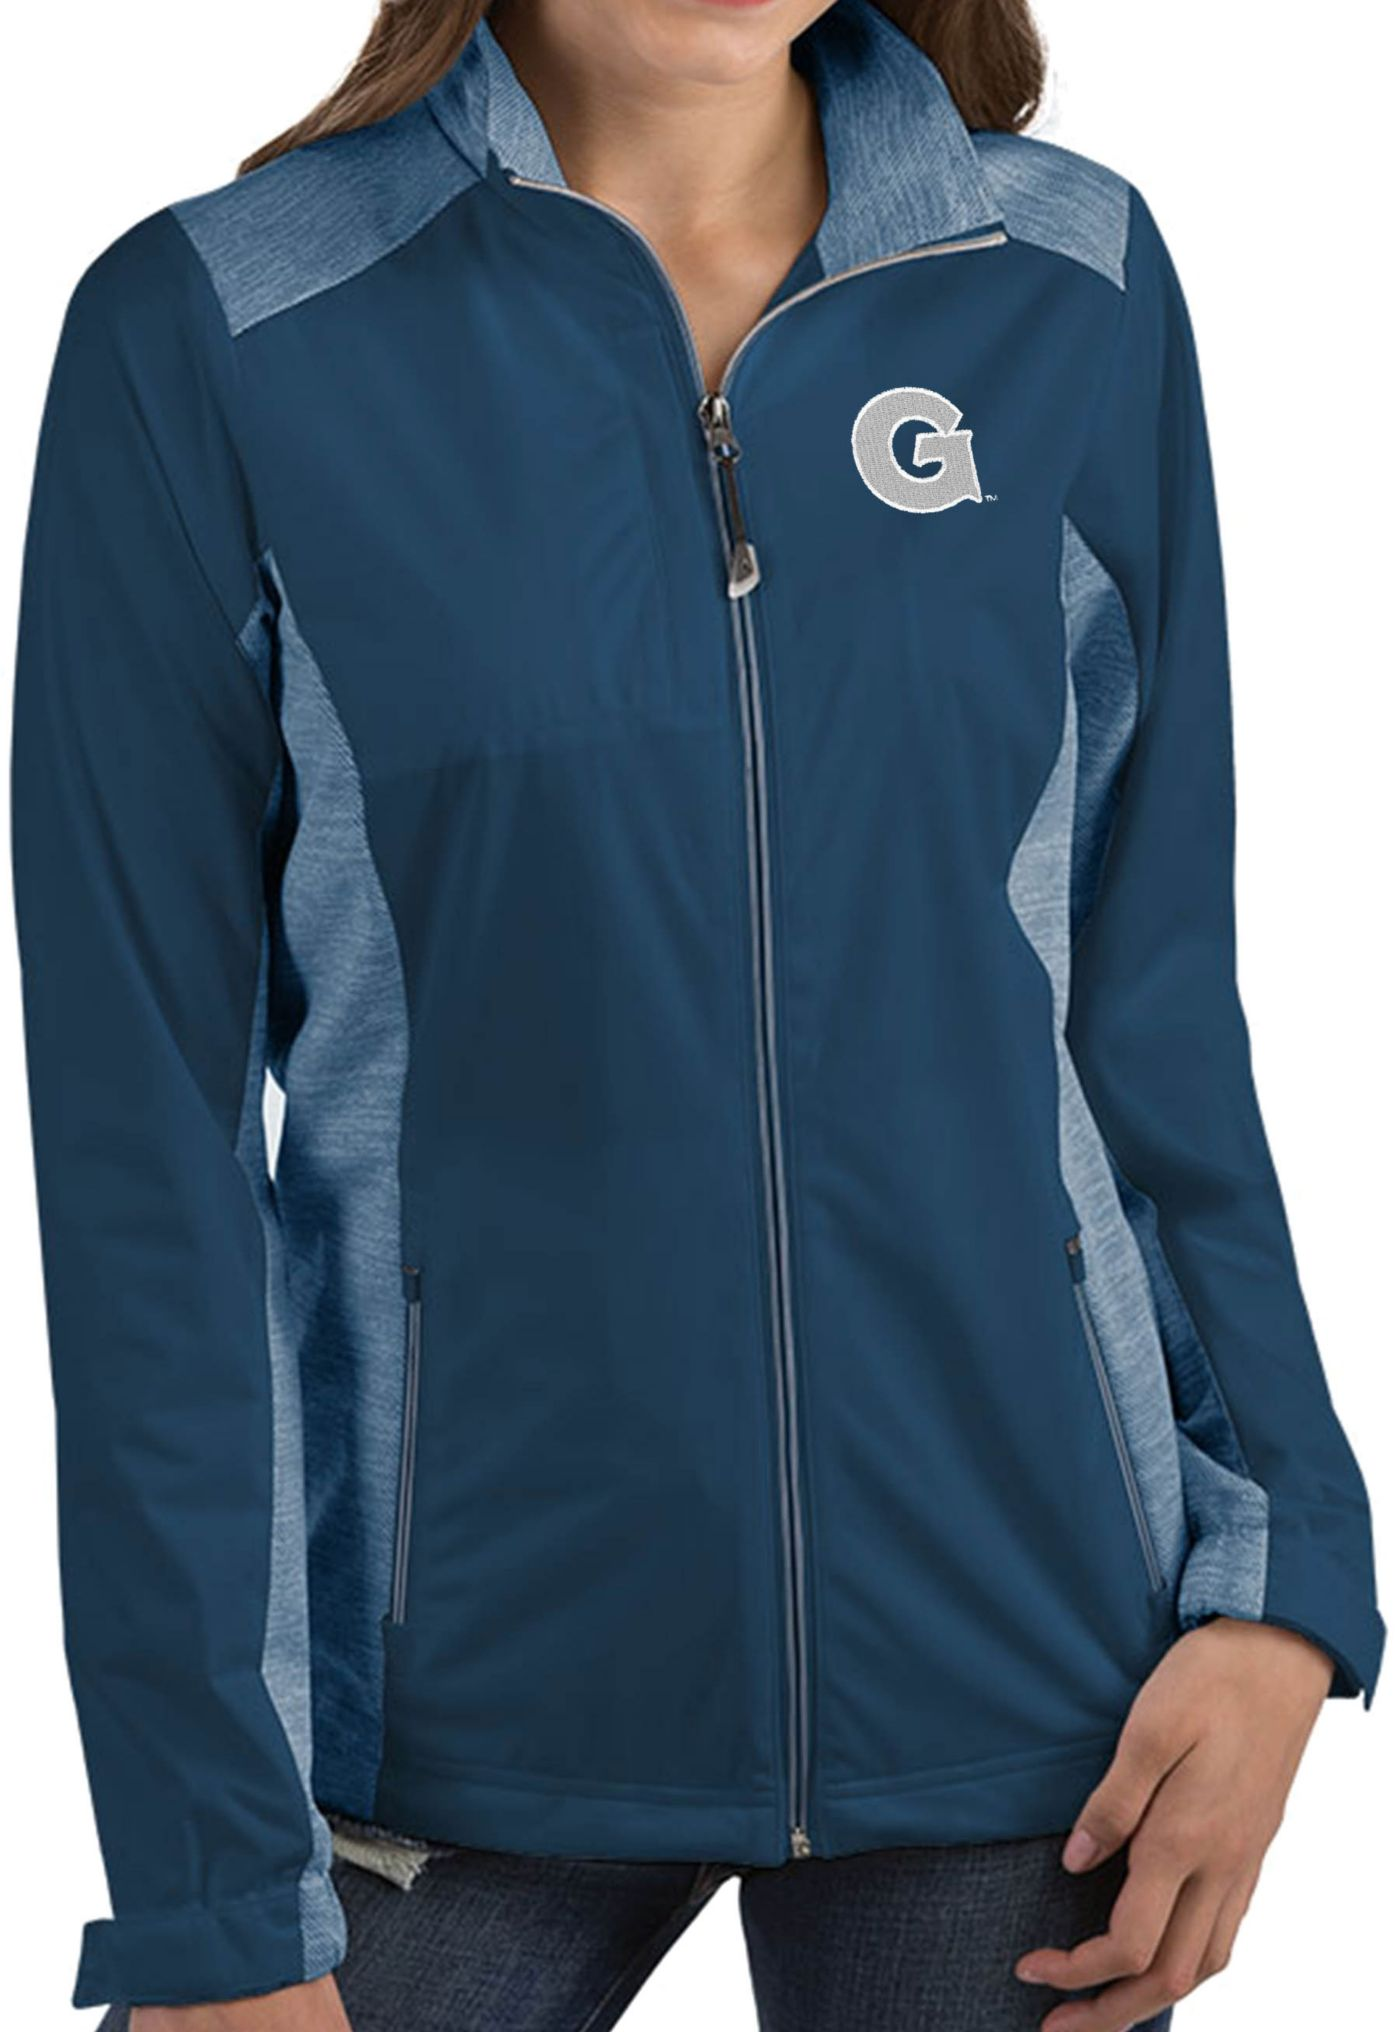 Antigua Women's Georgetown Hoyas Blue Revolve Full-Zip Jacket